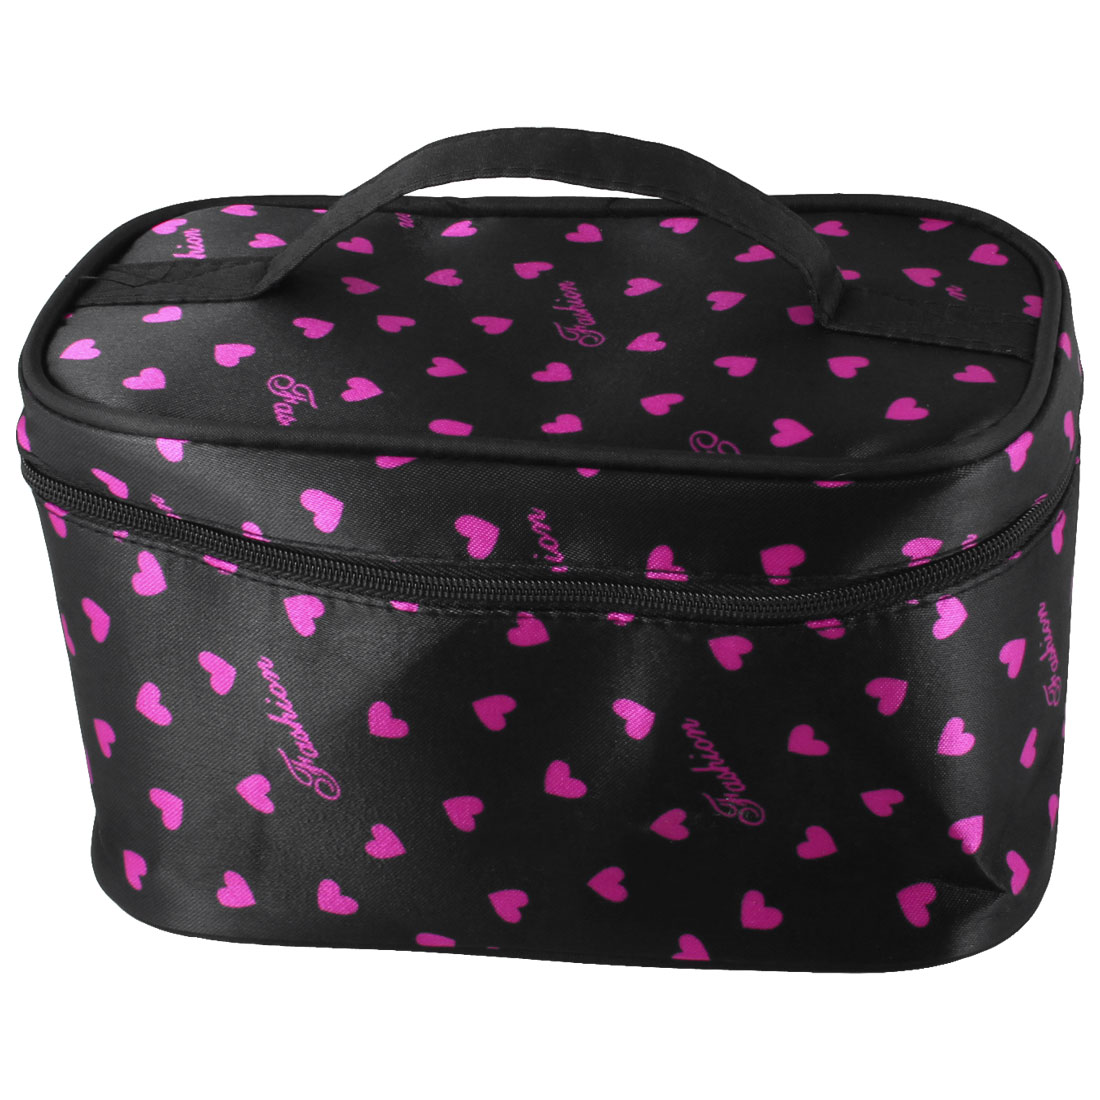 Zipper Closure Fuchsia Heart Pattern Black Cosmetic Hand Case Bag